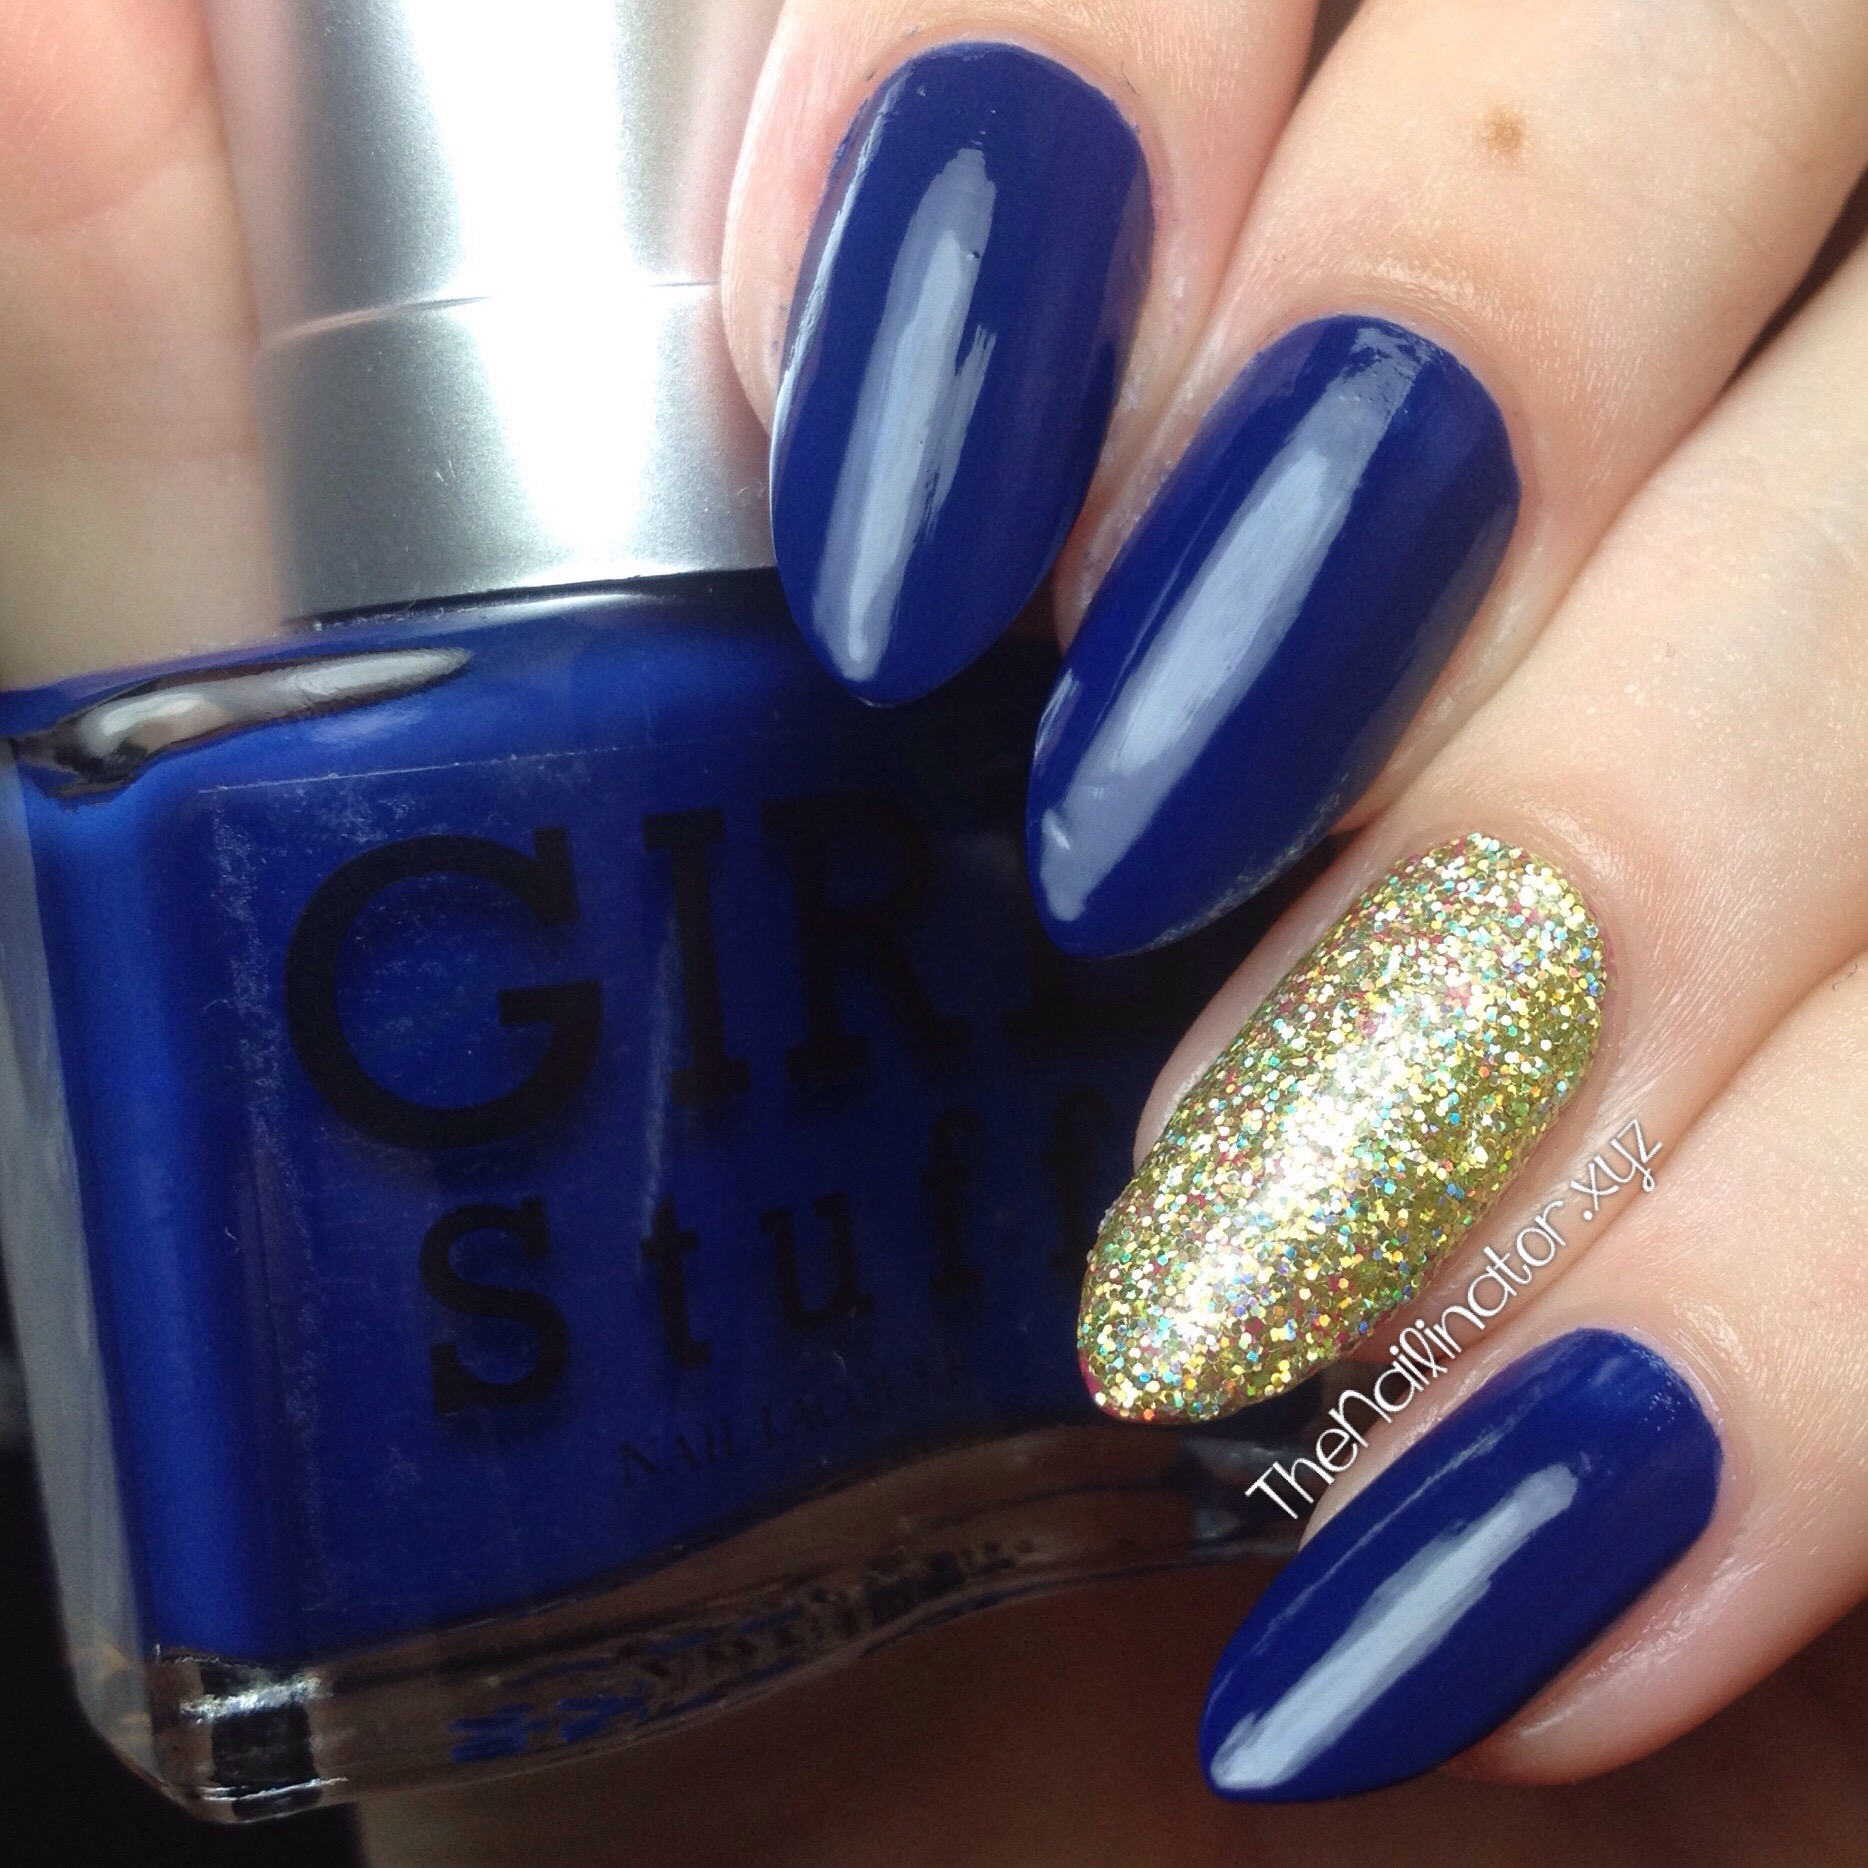 Girlstuff Blues with 24K sponged accent nail